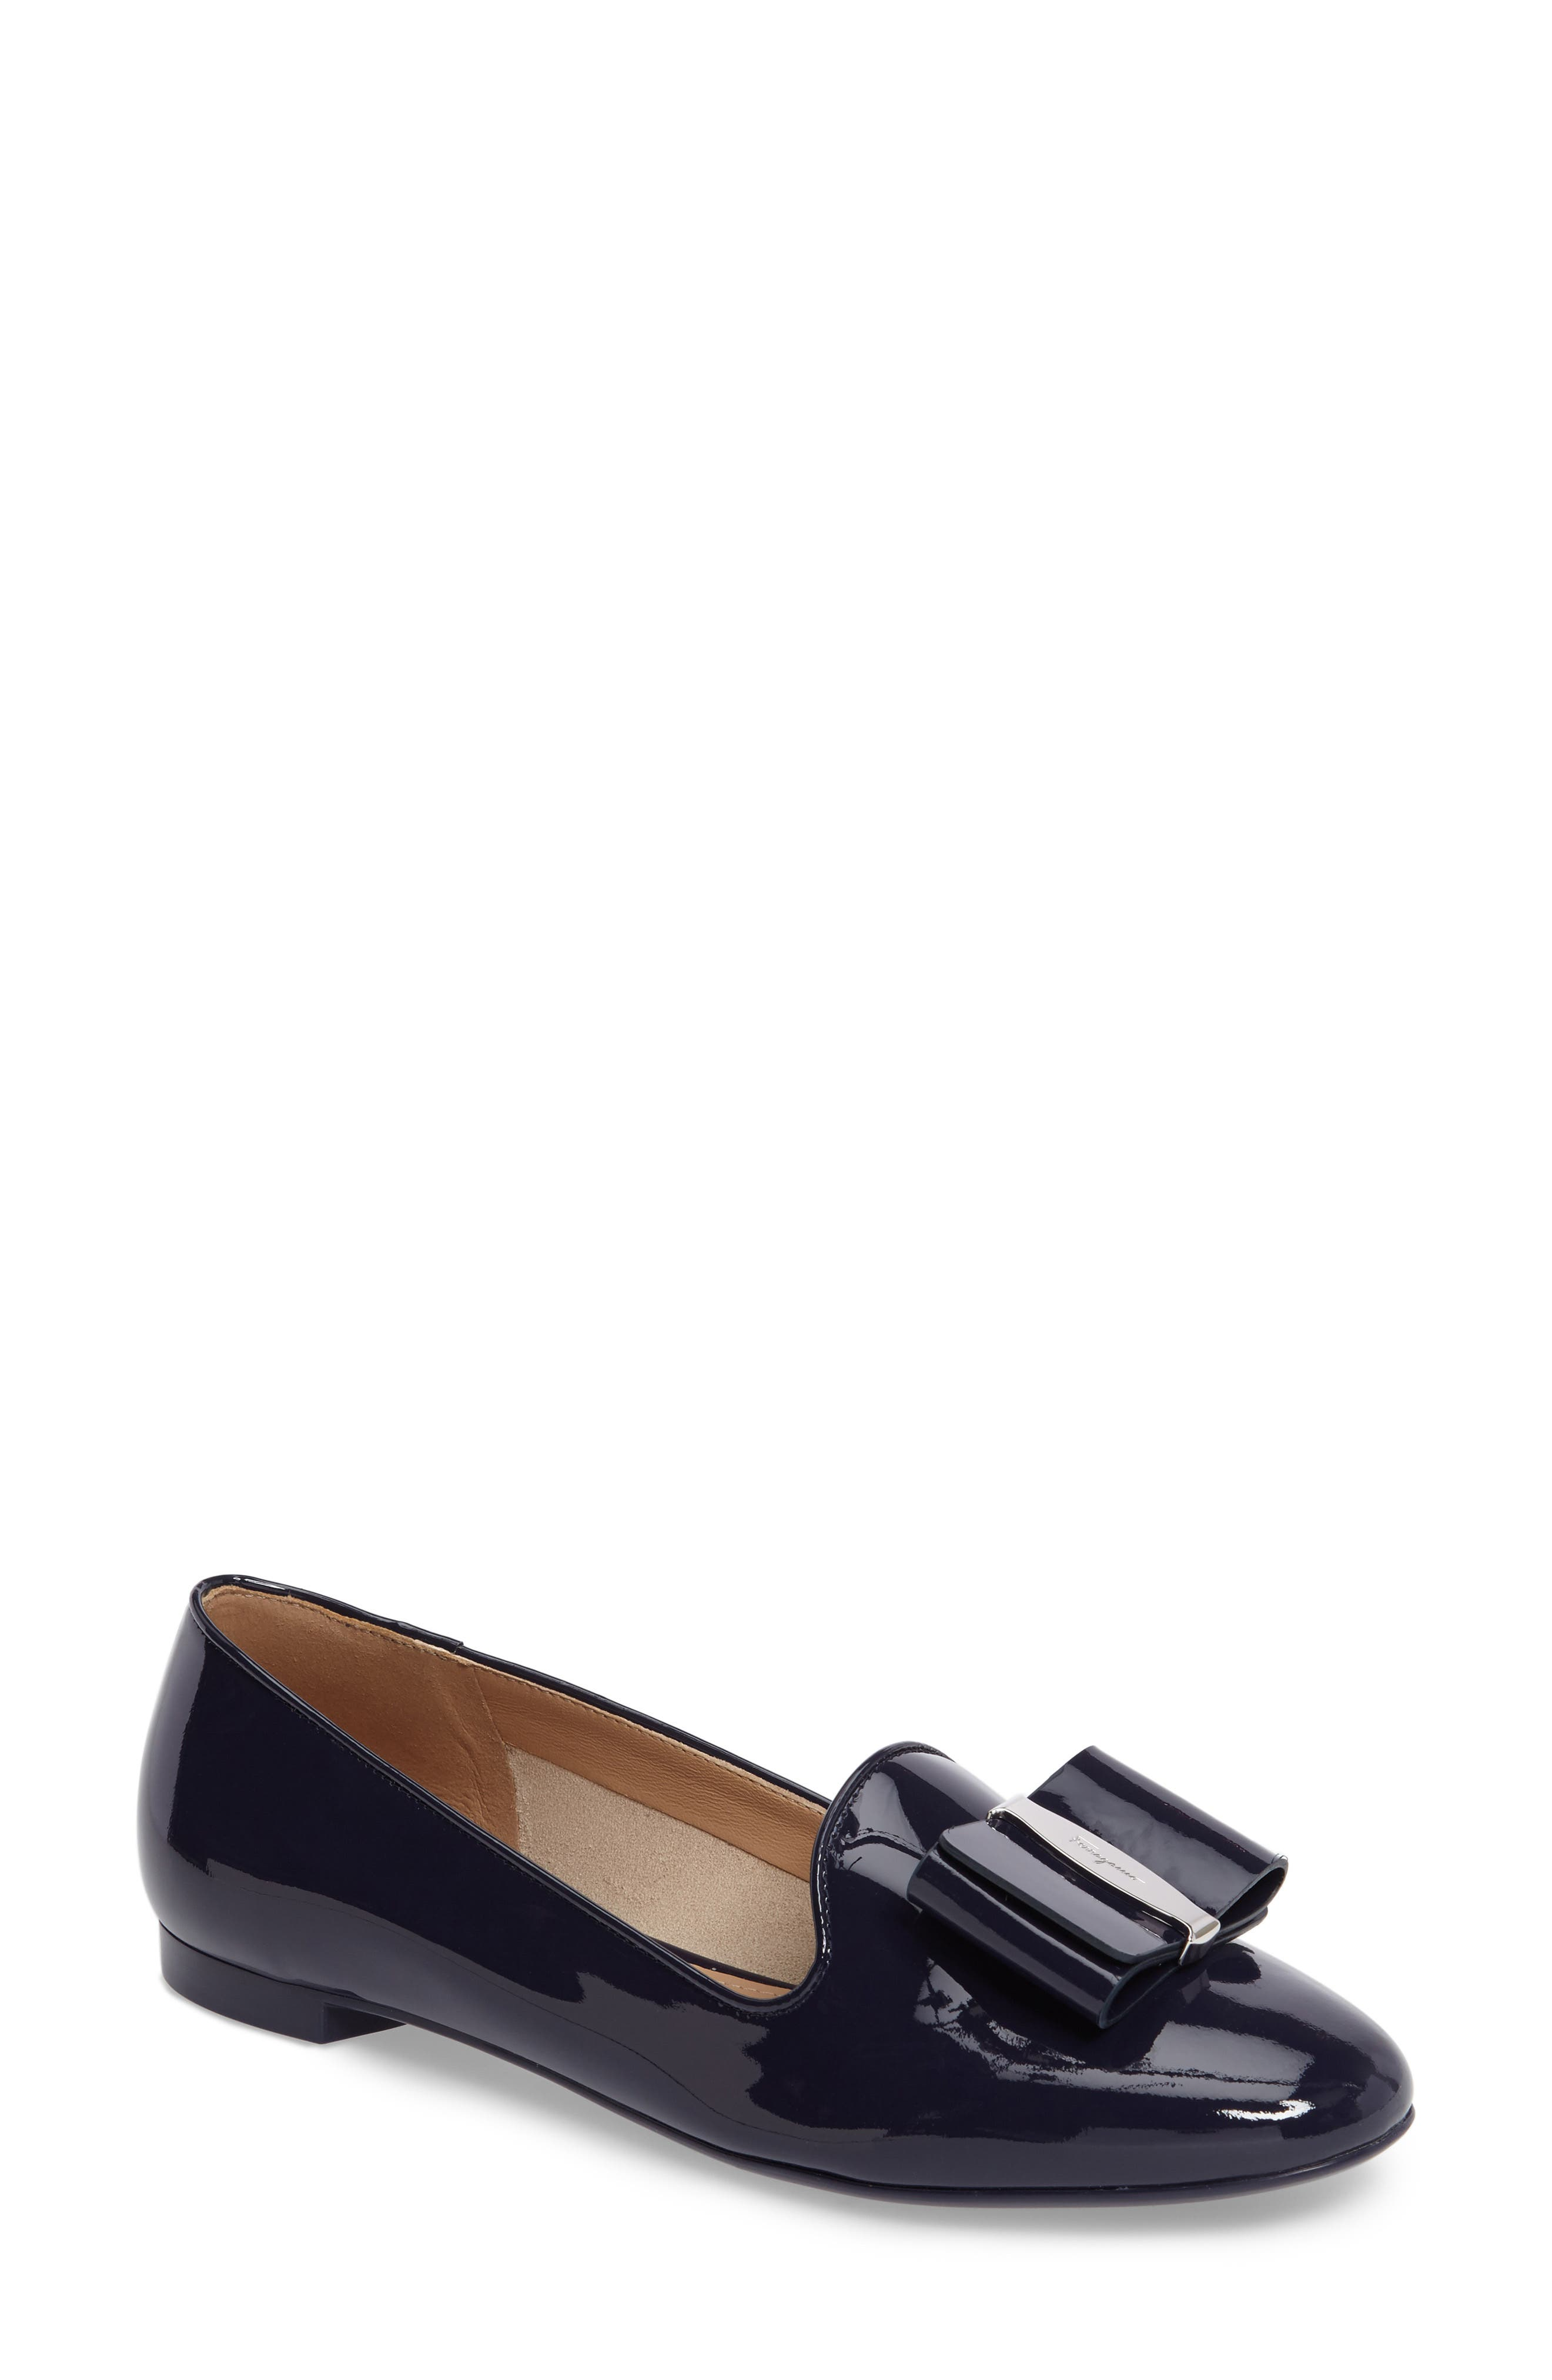 Salvatore Ferragamo Bow Smoking Loafer (Women)